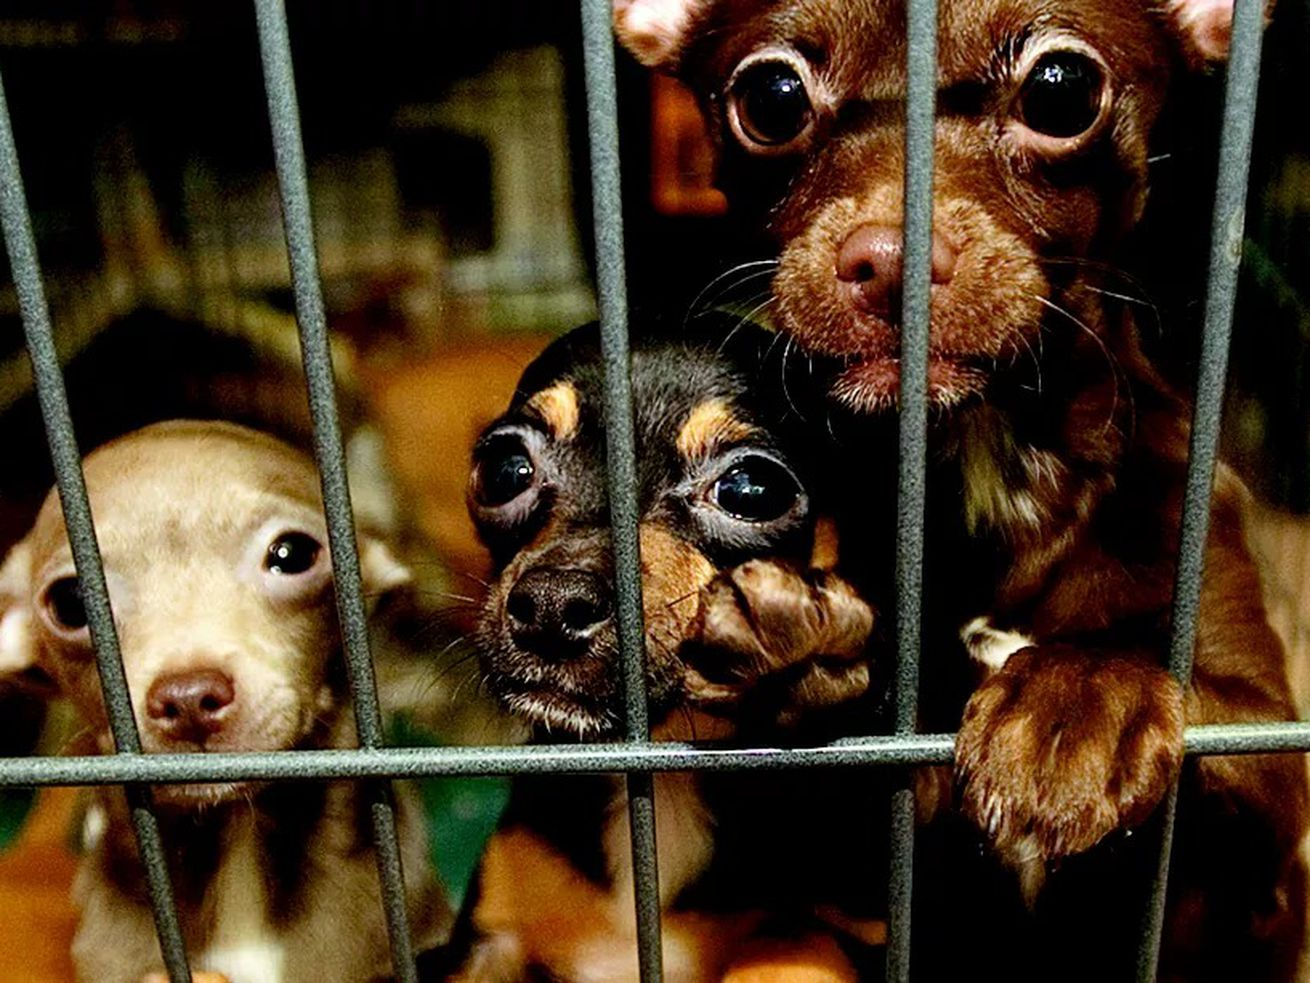 Chihuahuas rescued from a suspected puppy mill in Peotone.